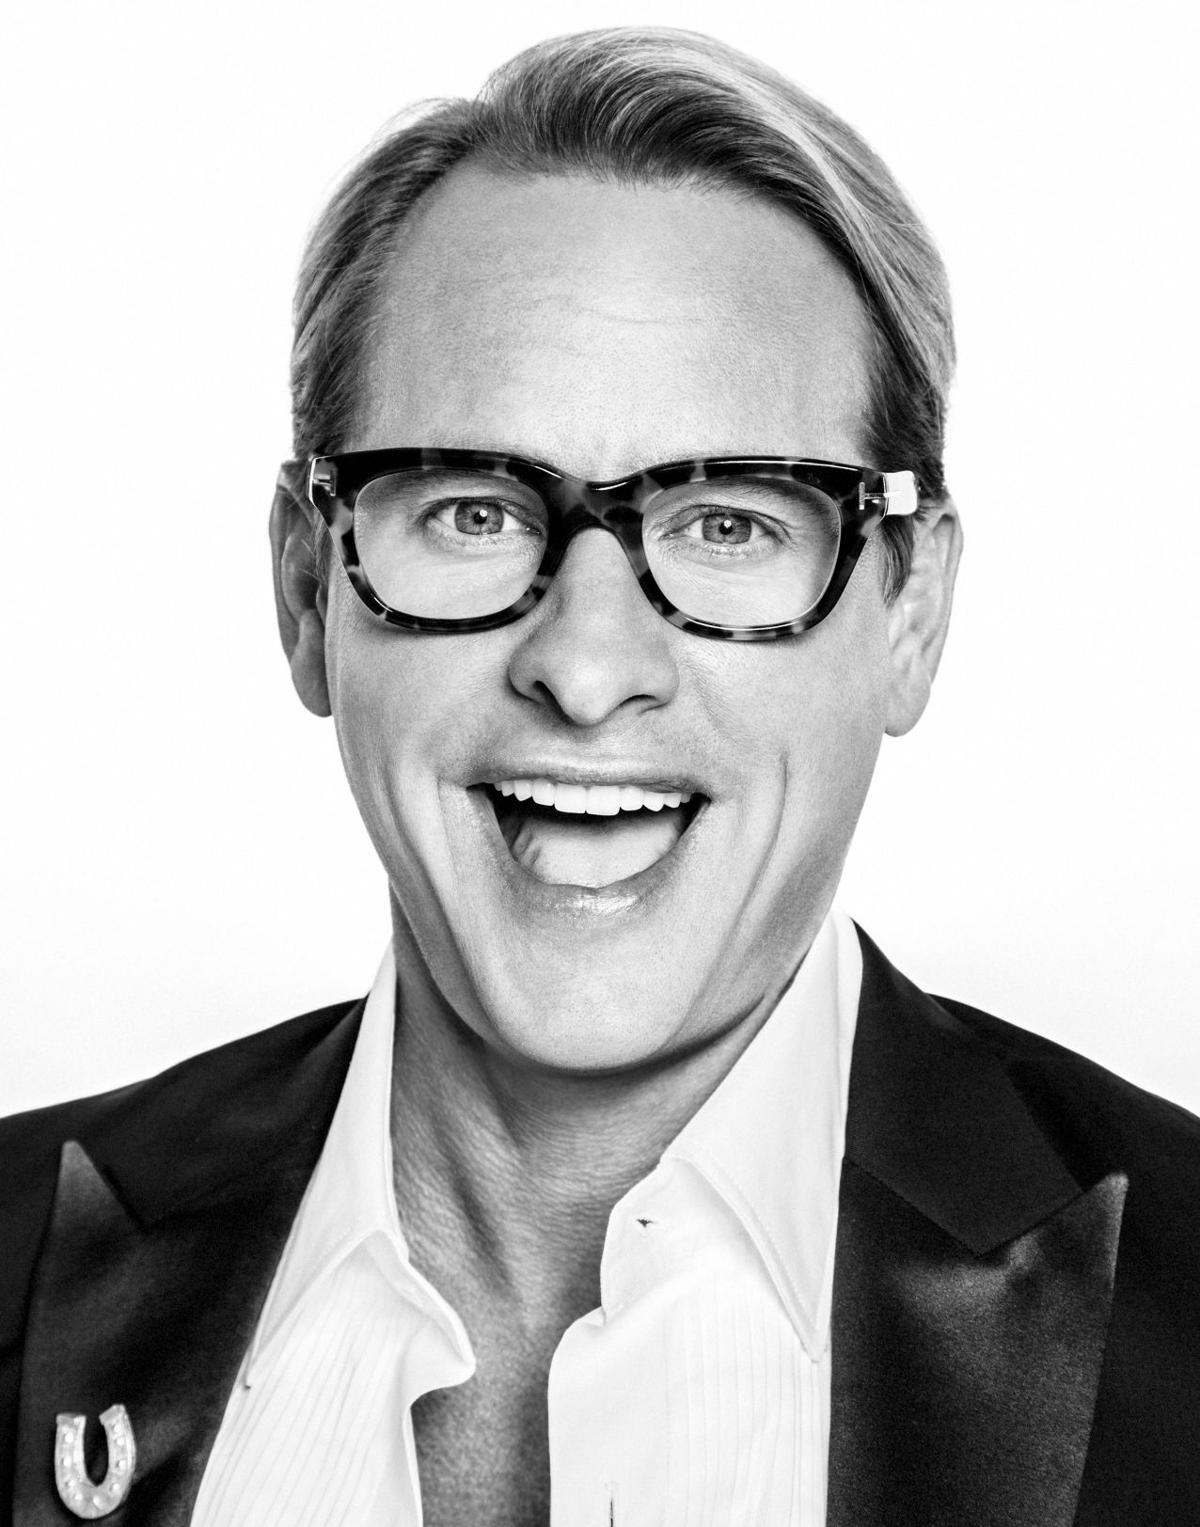 011520_MNS_Cathedral_Antiques_001 Carson Kressley